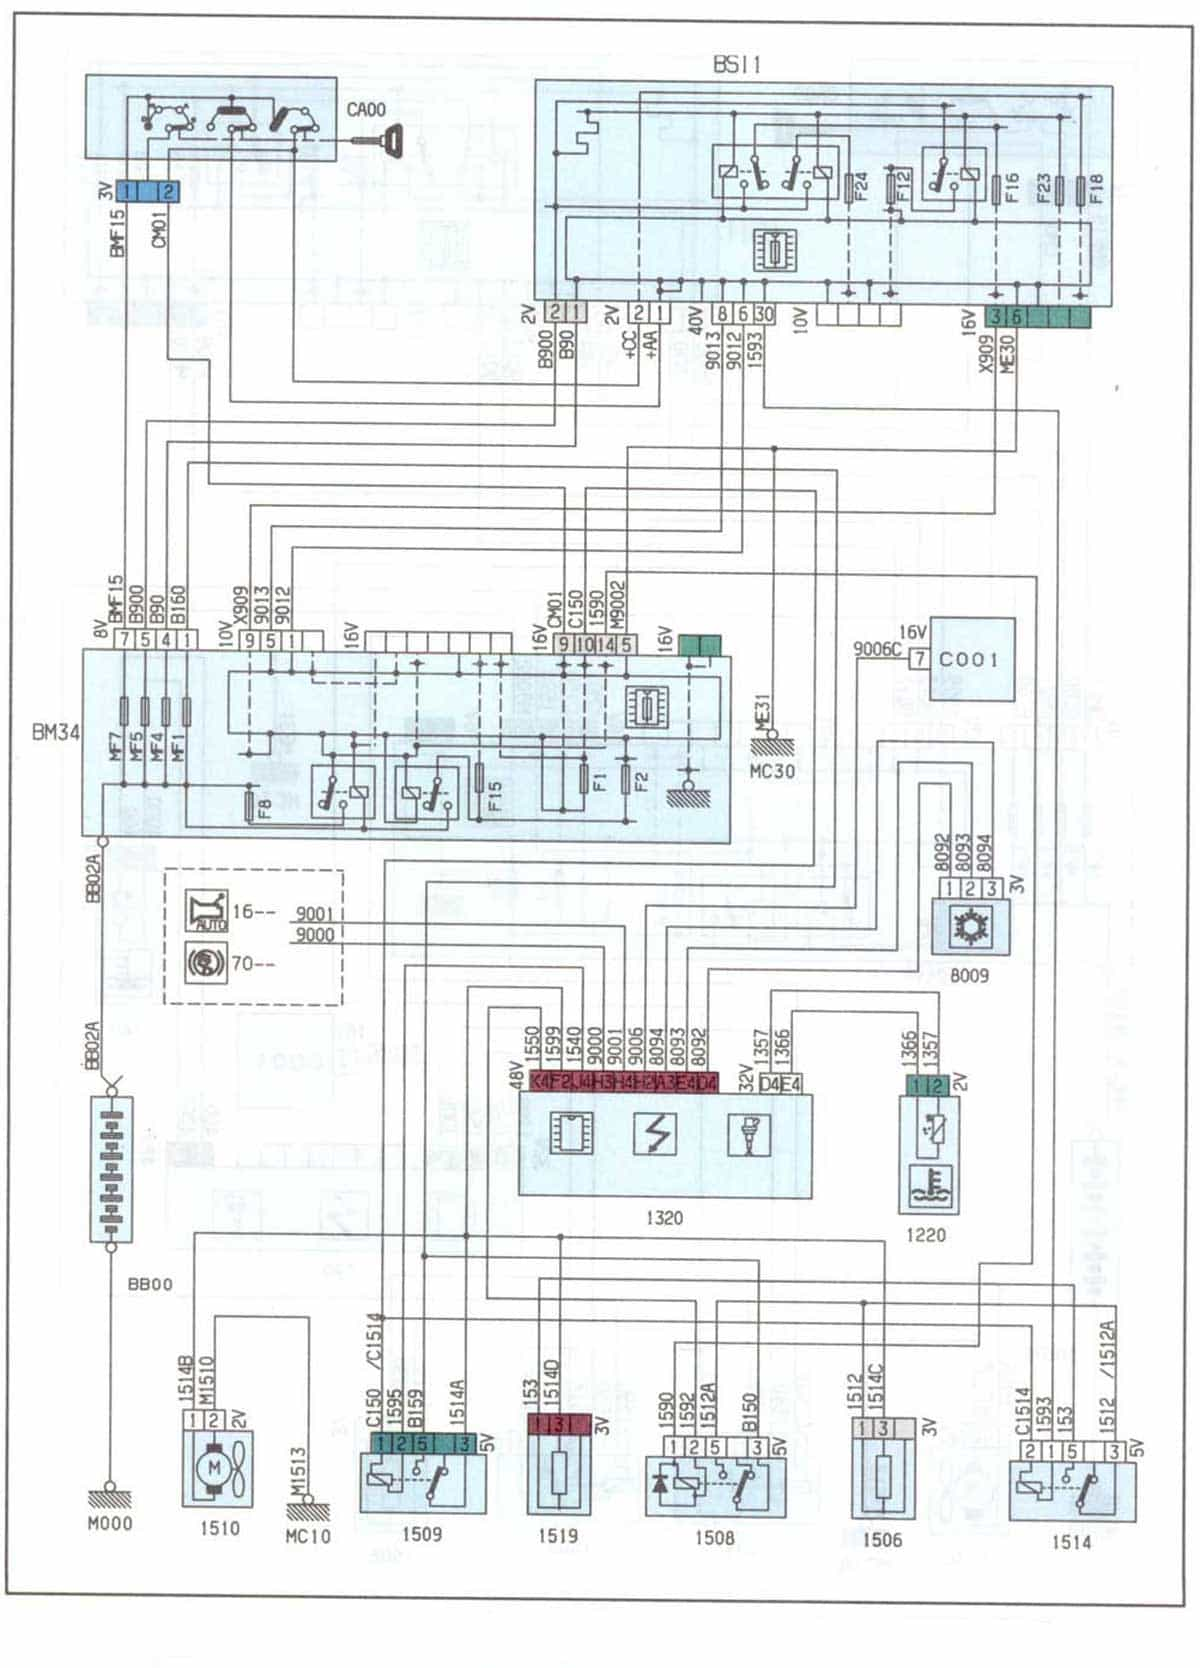 CITROEN C5 Wiring Diagrams & Fuse Boxes - Car Electrical Wiring Diagram | Citroen C5 Wiring Diagram Free |  | Car Electrical Wiring Diagram - Jimdo